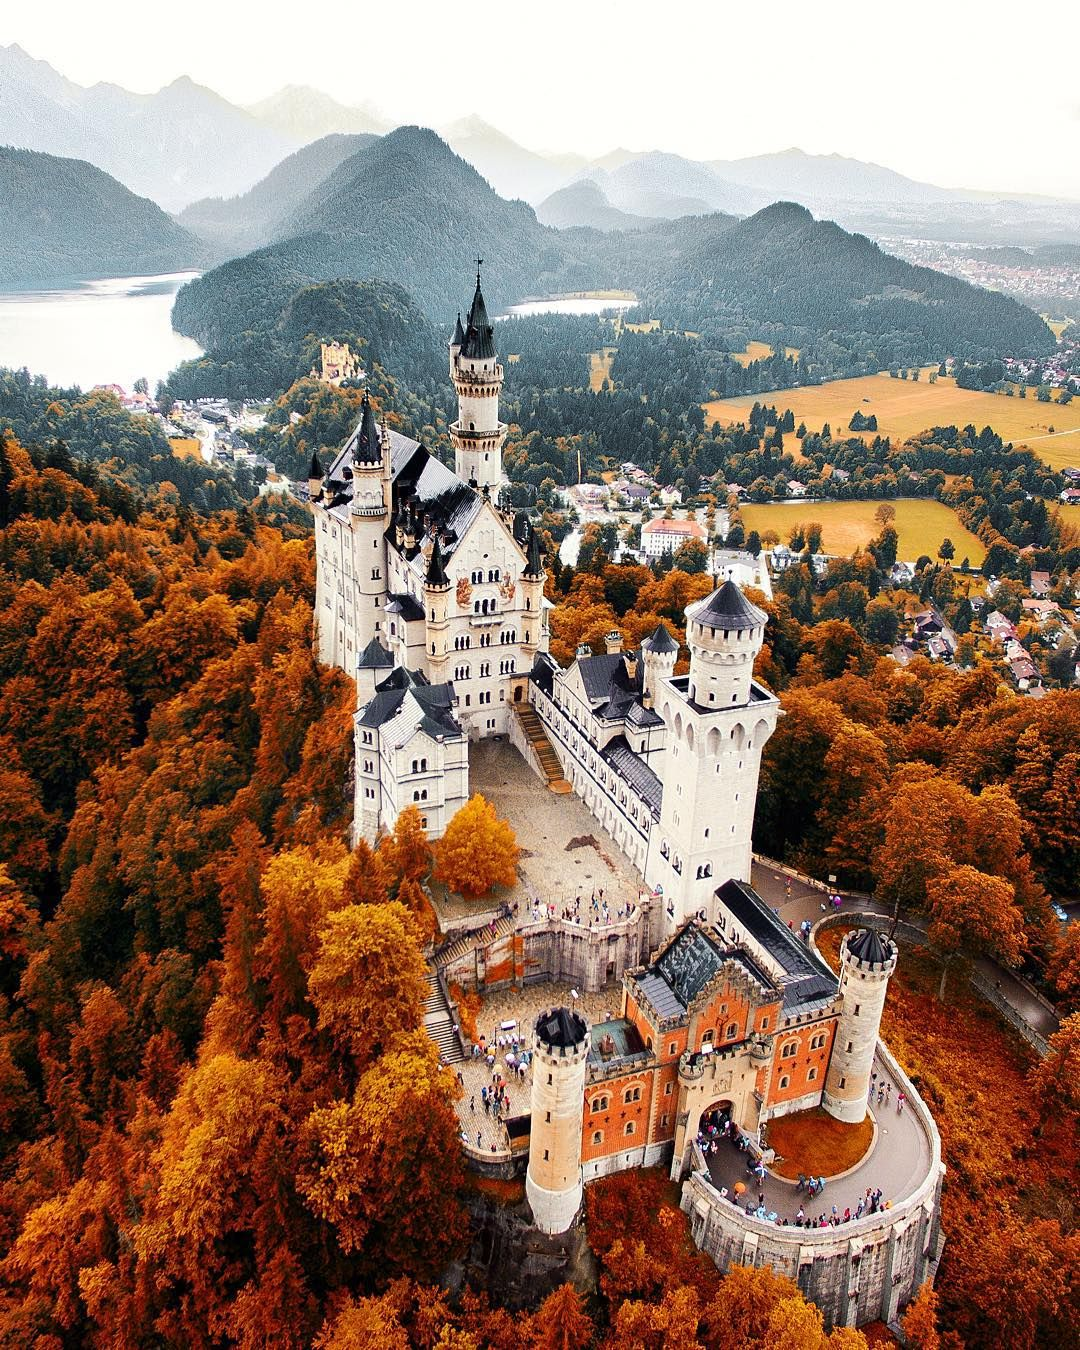 Autumn End   Tag someone you would live here with  My bro @bengreenphotography is on the way to 30k - head over to his page and check out his epic work it's totally worth a follow!  #gofollow  An epic drone shot of Neuschwanstein Castle which myself and @lmt_ shot on our Europe trip! I have to head back and capture this in the snow  But for now here is my Autumn edit for you!  by jacob